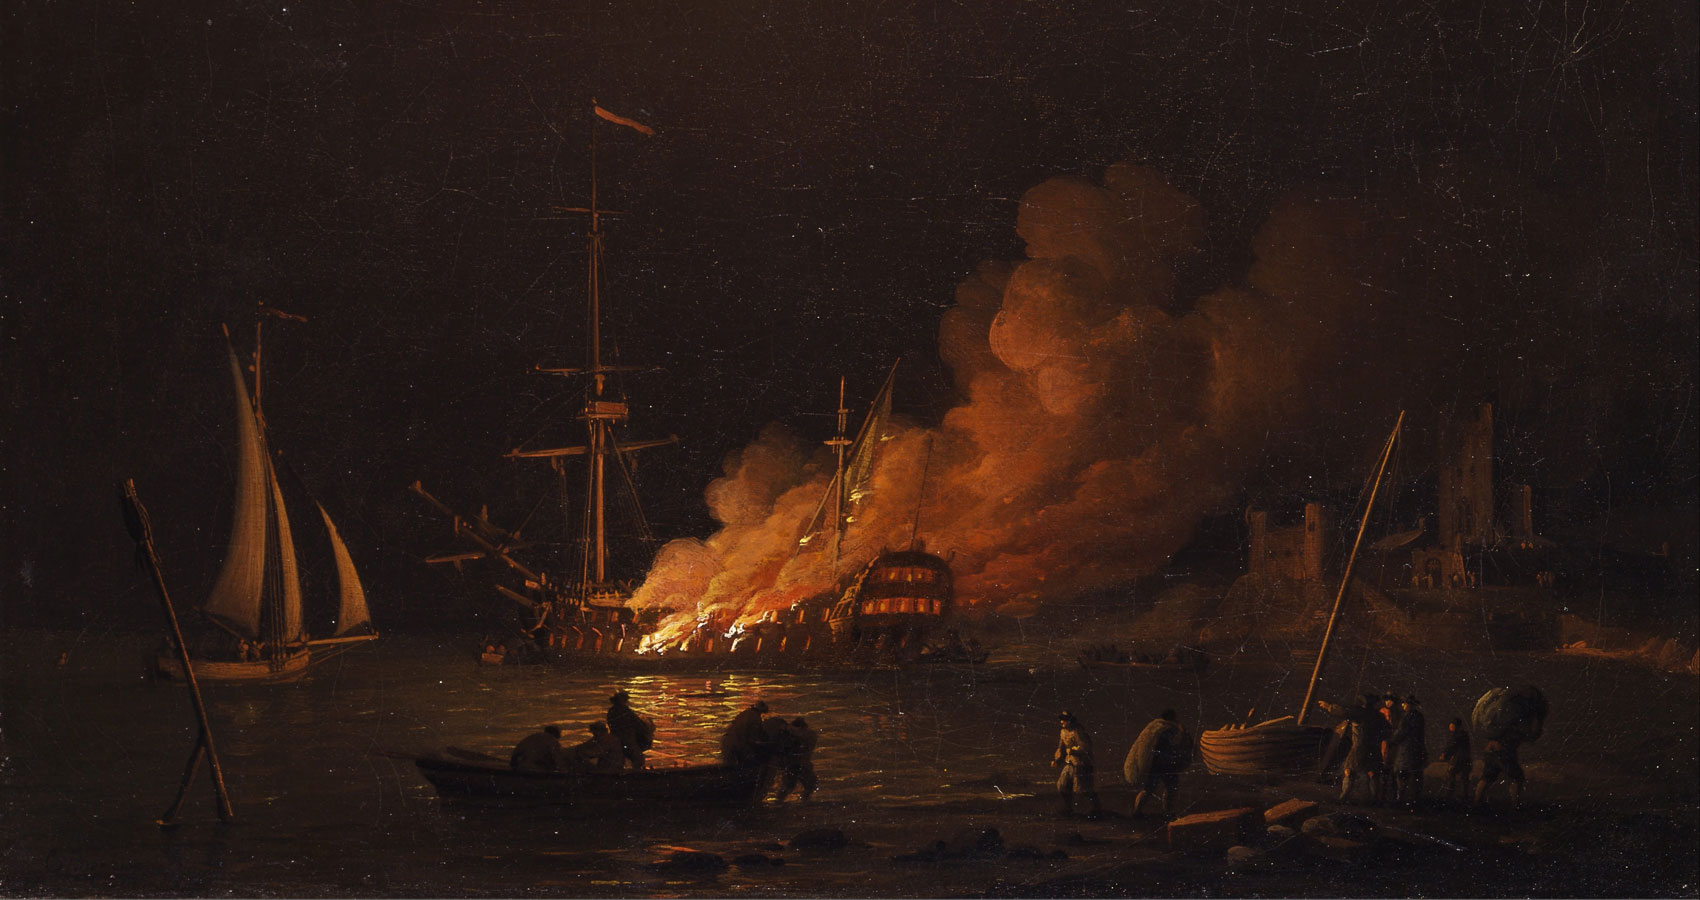 A Sailor Recounts The Sinking Of A Ship written by James Gabriel